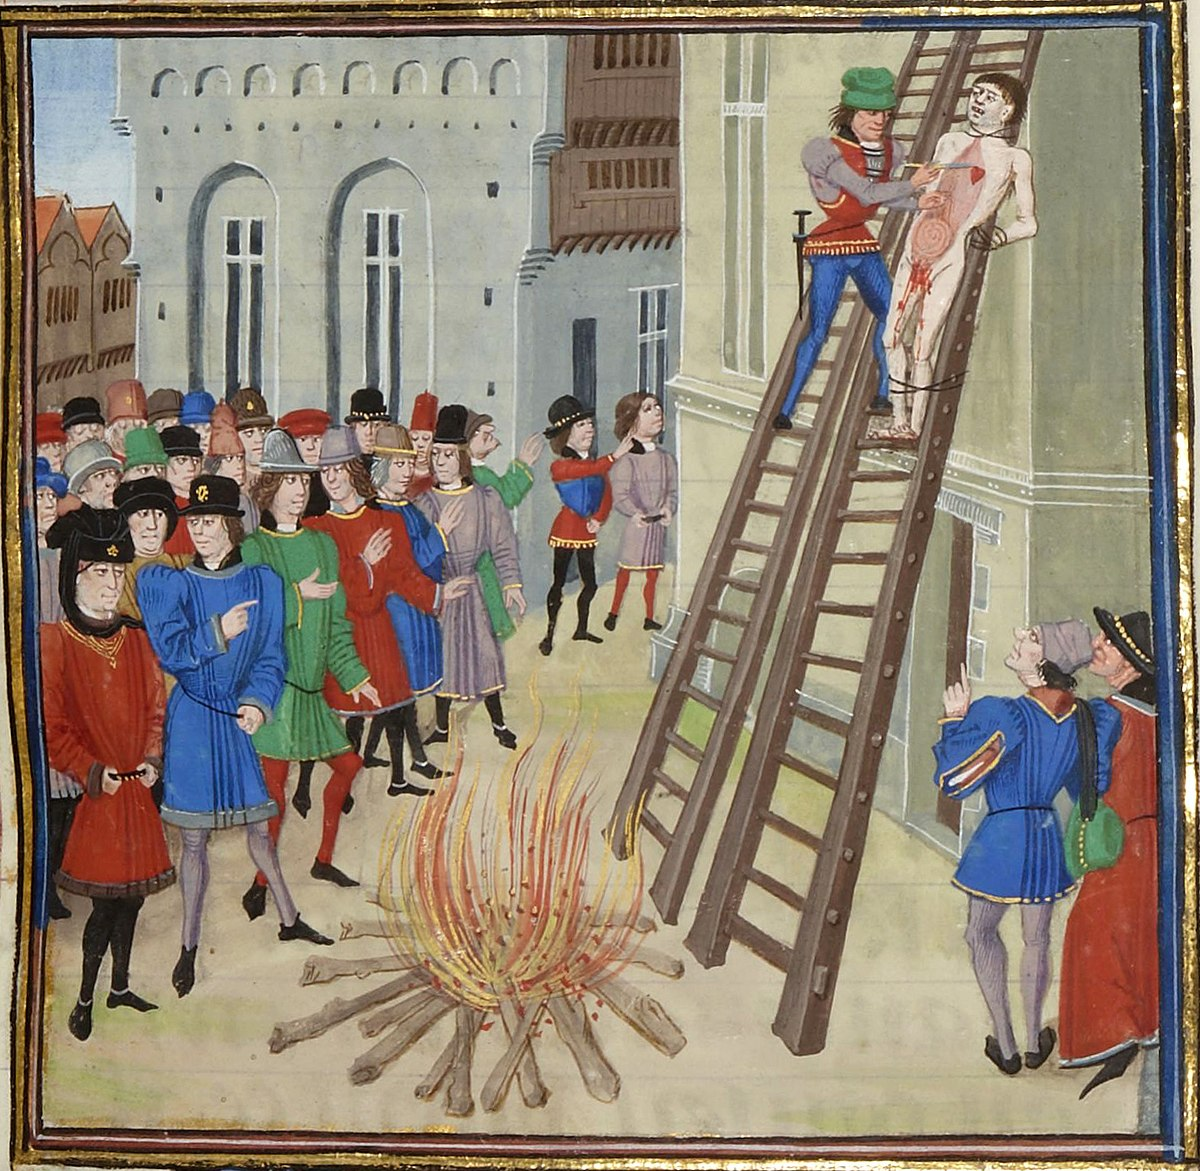 Hanged, drawn and quartered - Wikipedia